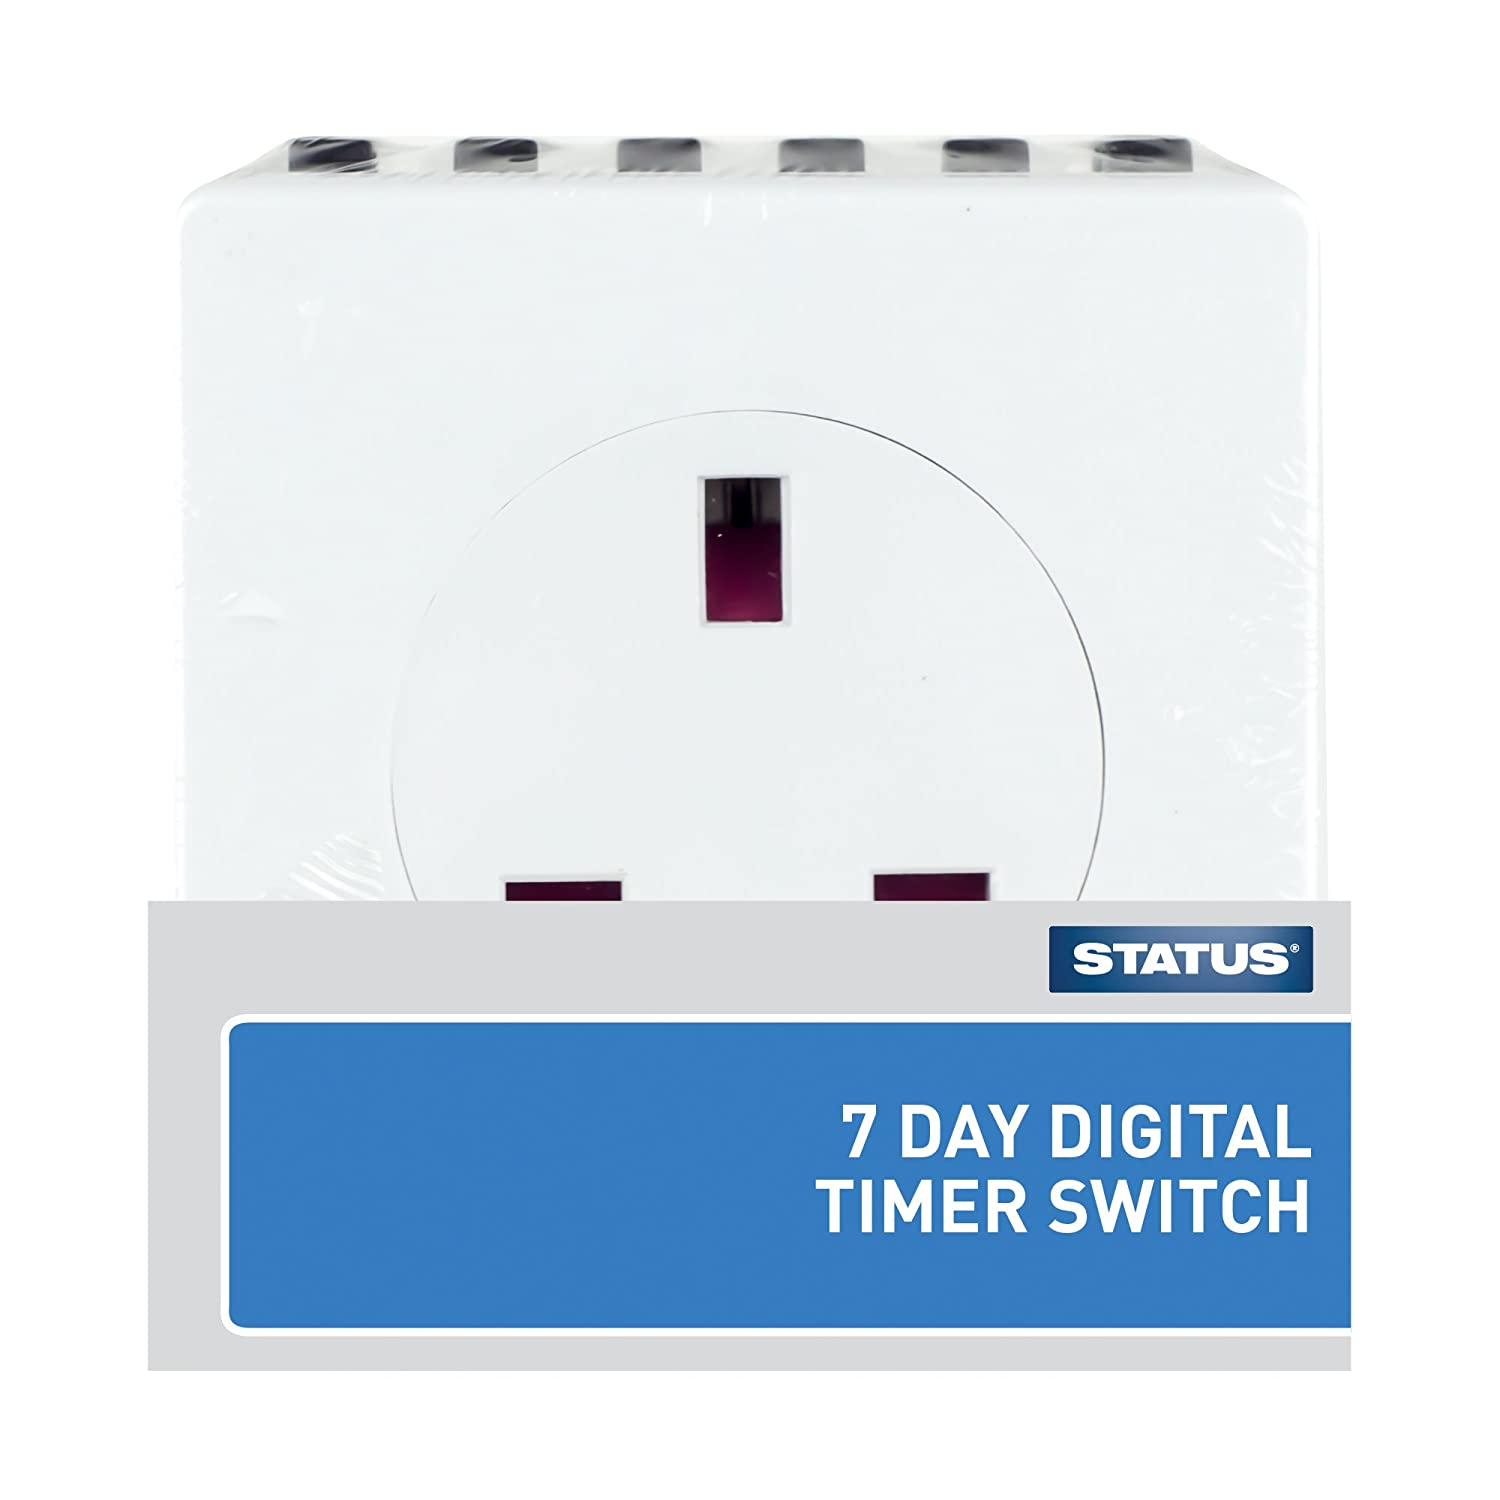 Status S7ddt3 7 Day Digital Timer Switch White Diy 13 Amp Plug Top Bs1363 Stevenson Plumbing Electrical Supplies Tools